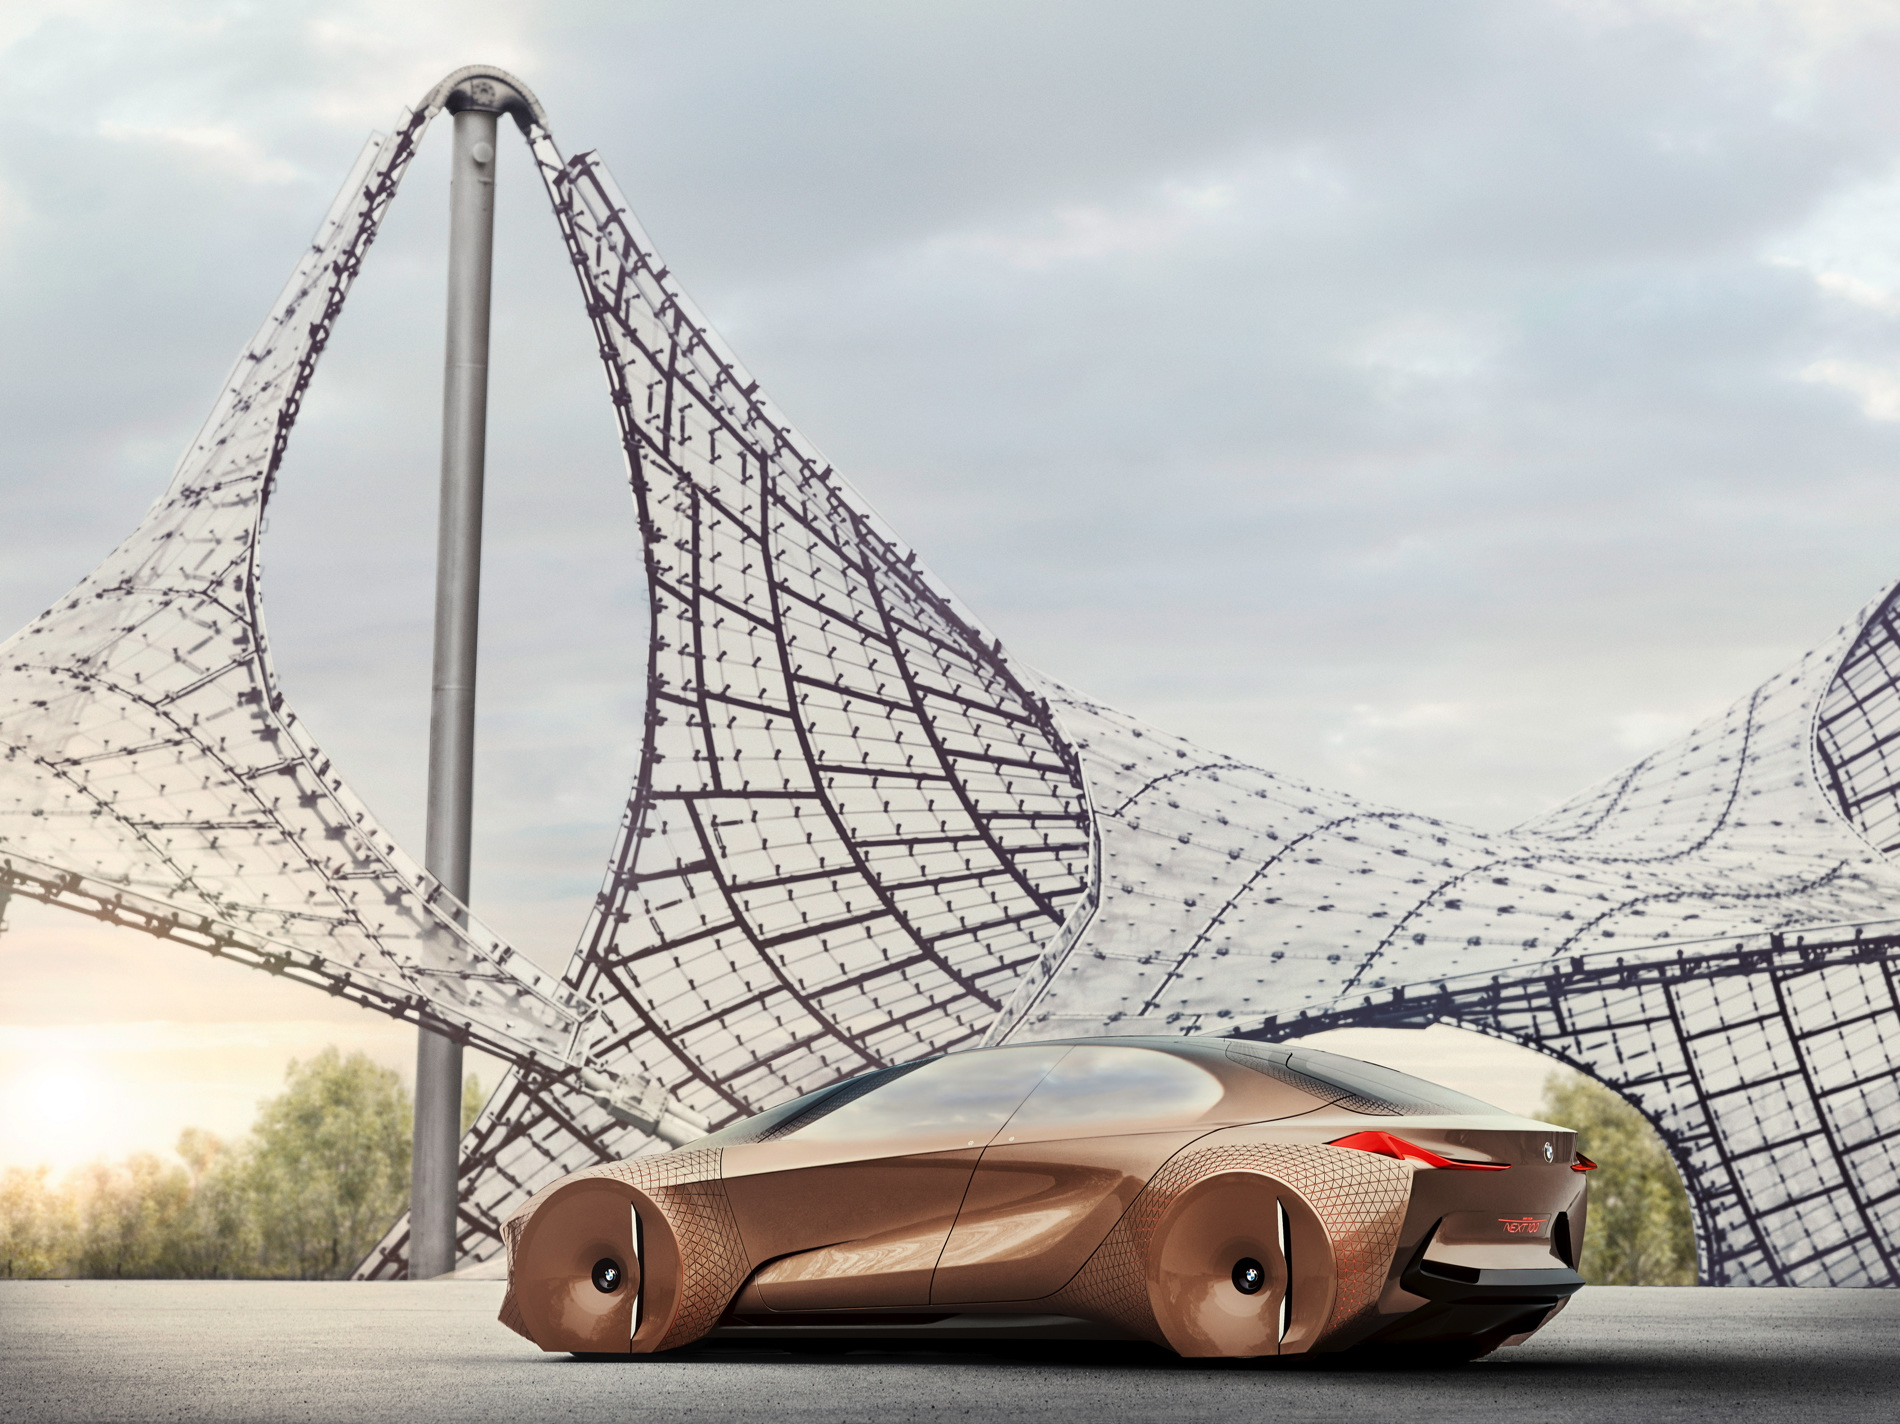 BMW Vision Next 100 images 131